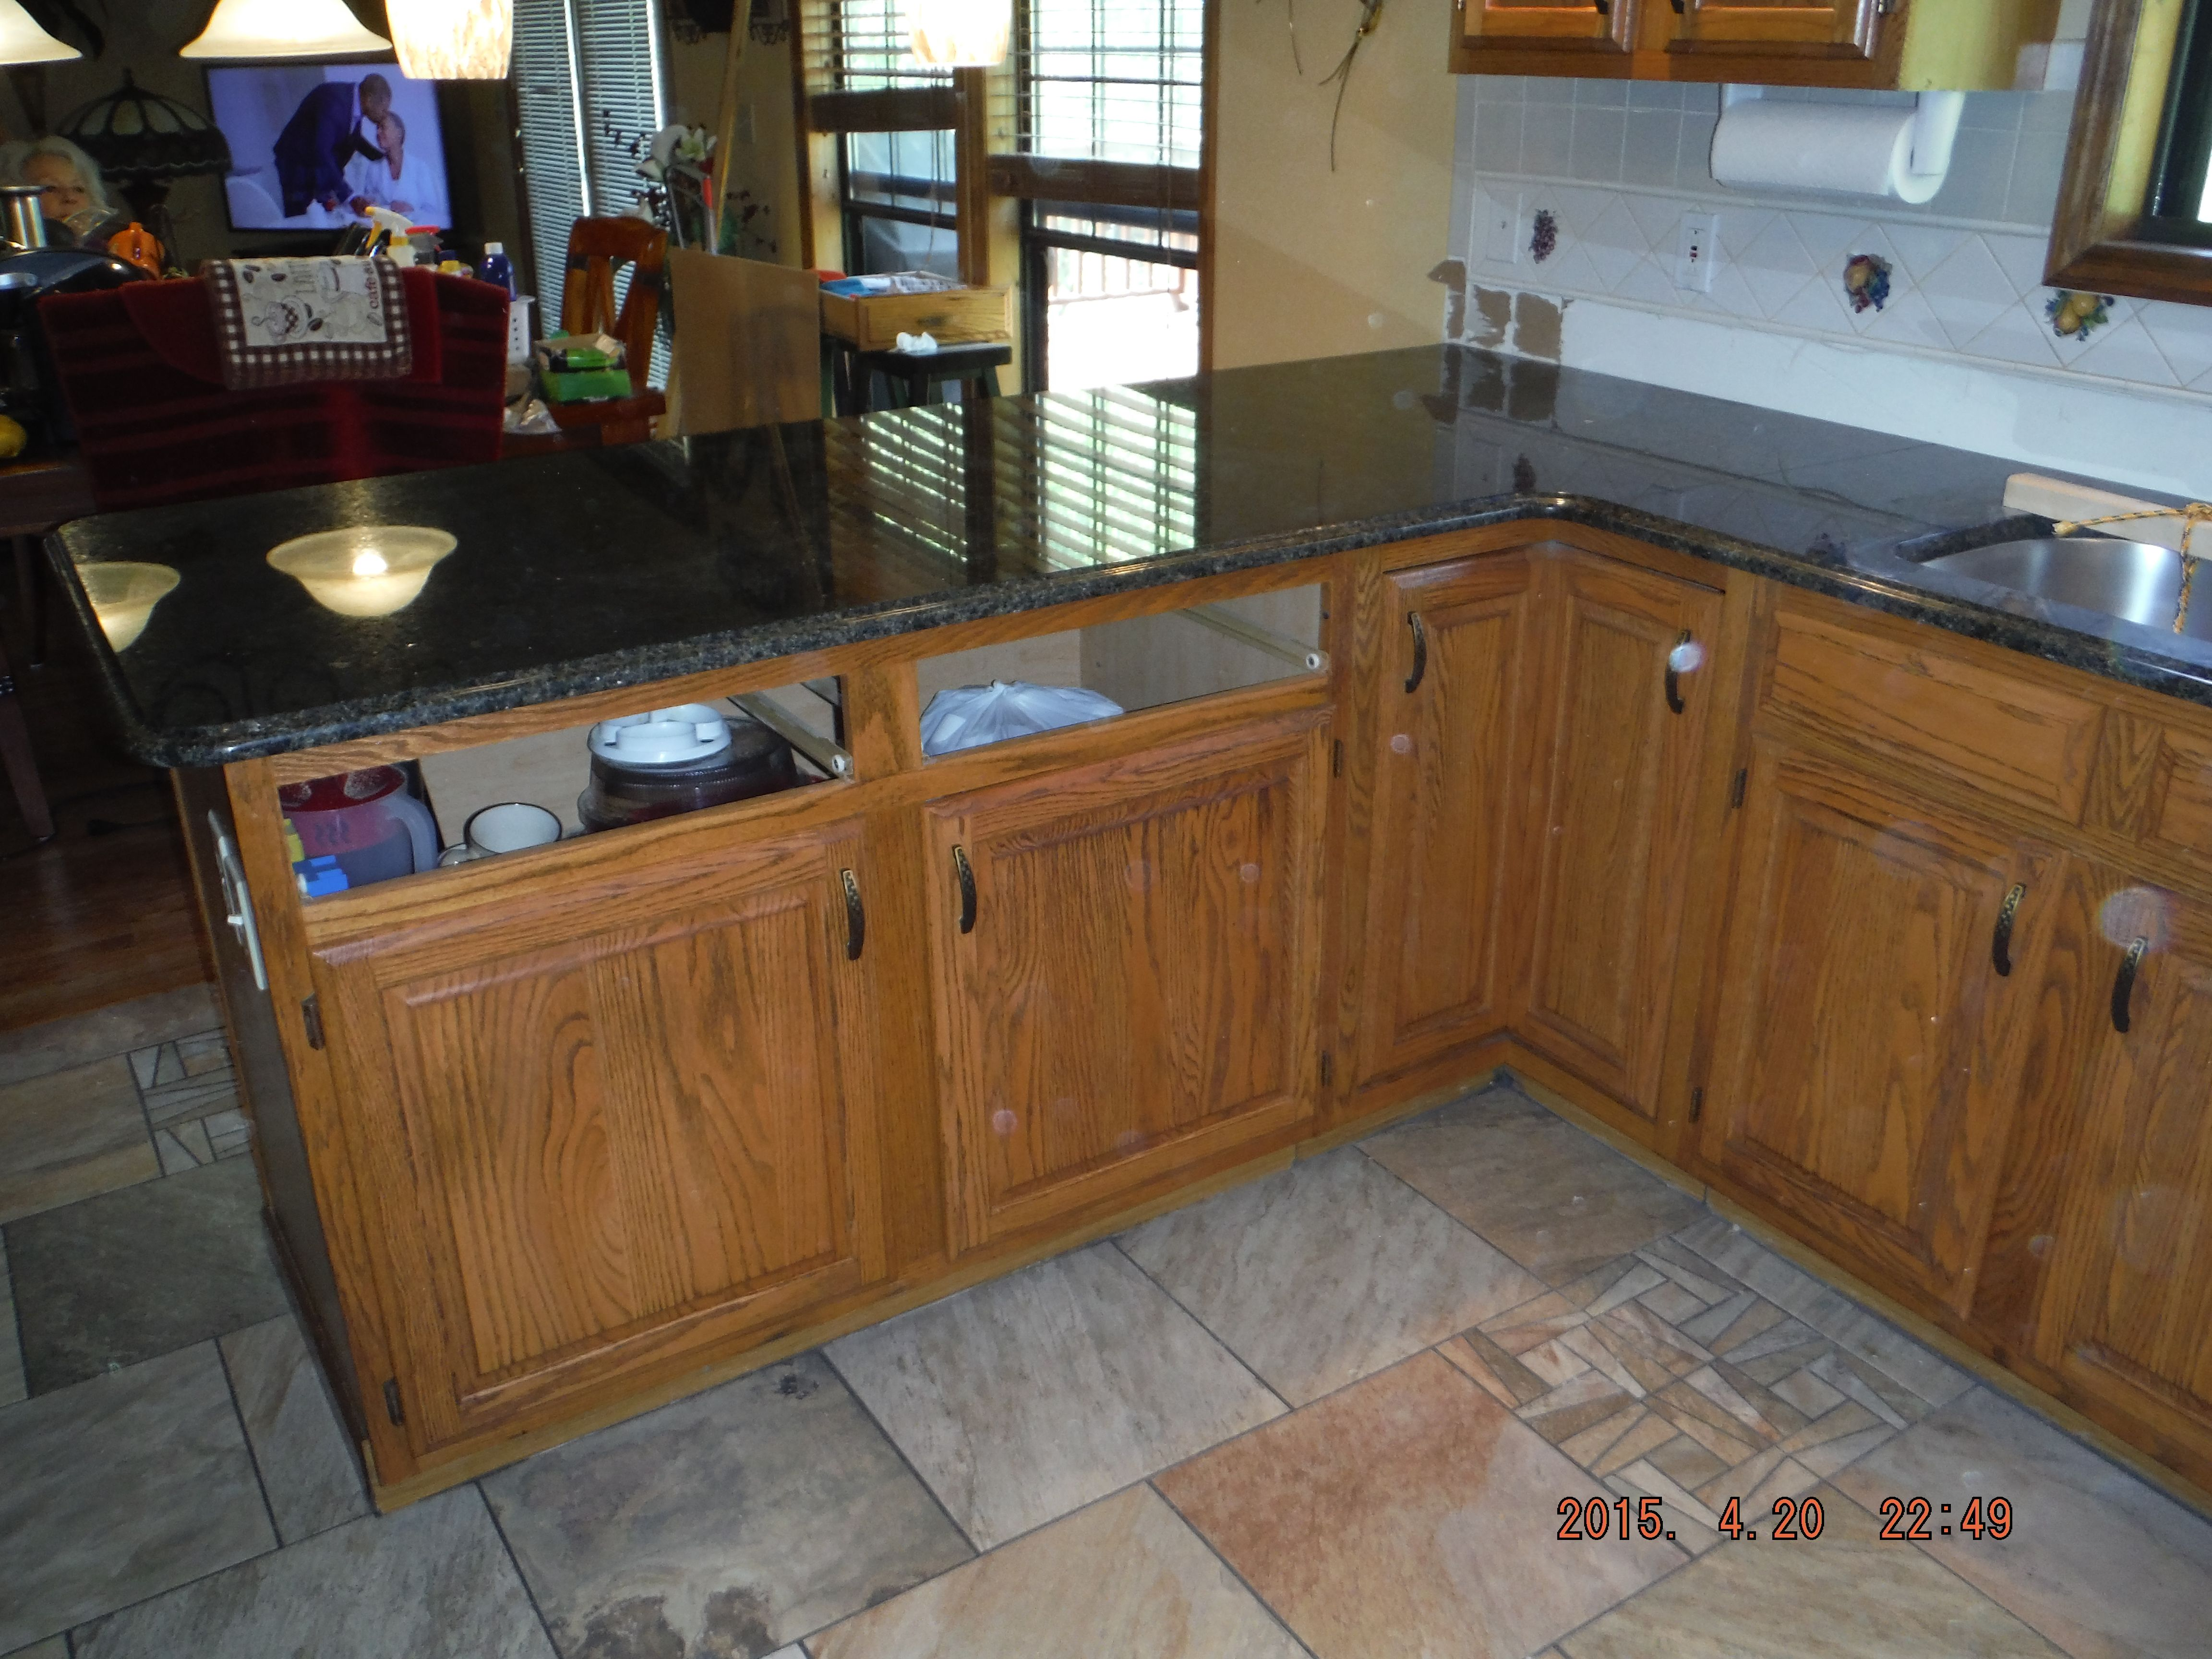 Uba Tuba Granite Kitchen Countertop Install For The Waddle Family.  Knoxvilleu0027s Stone Interiors. Showroom